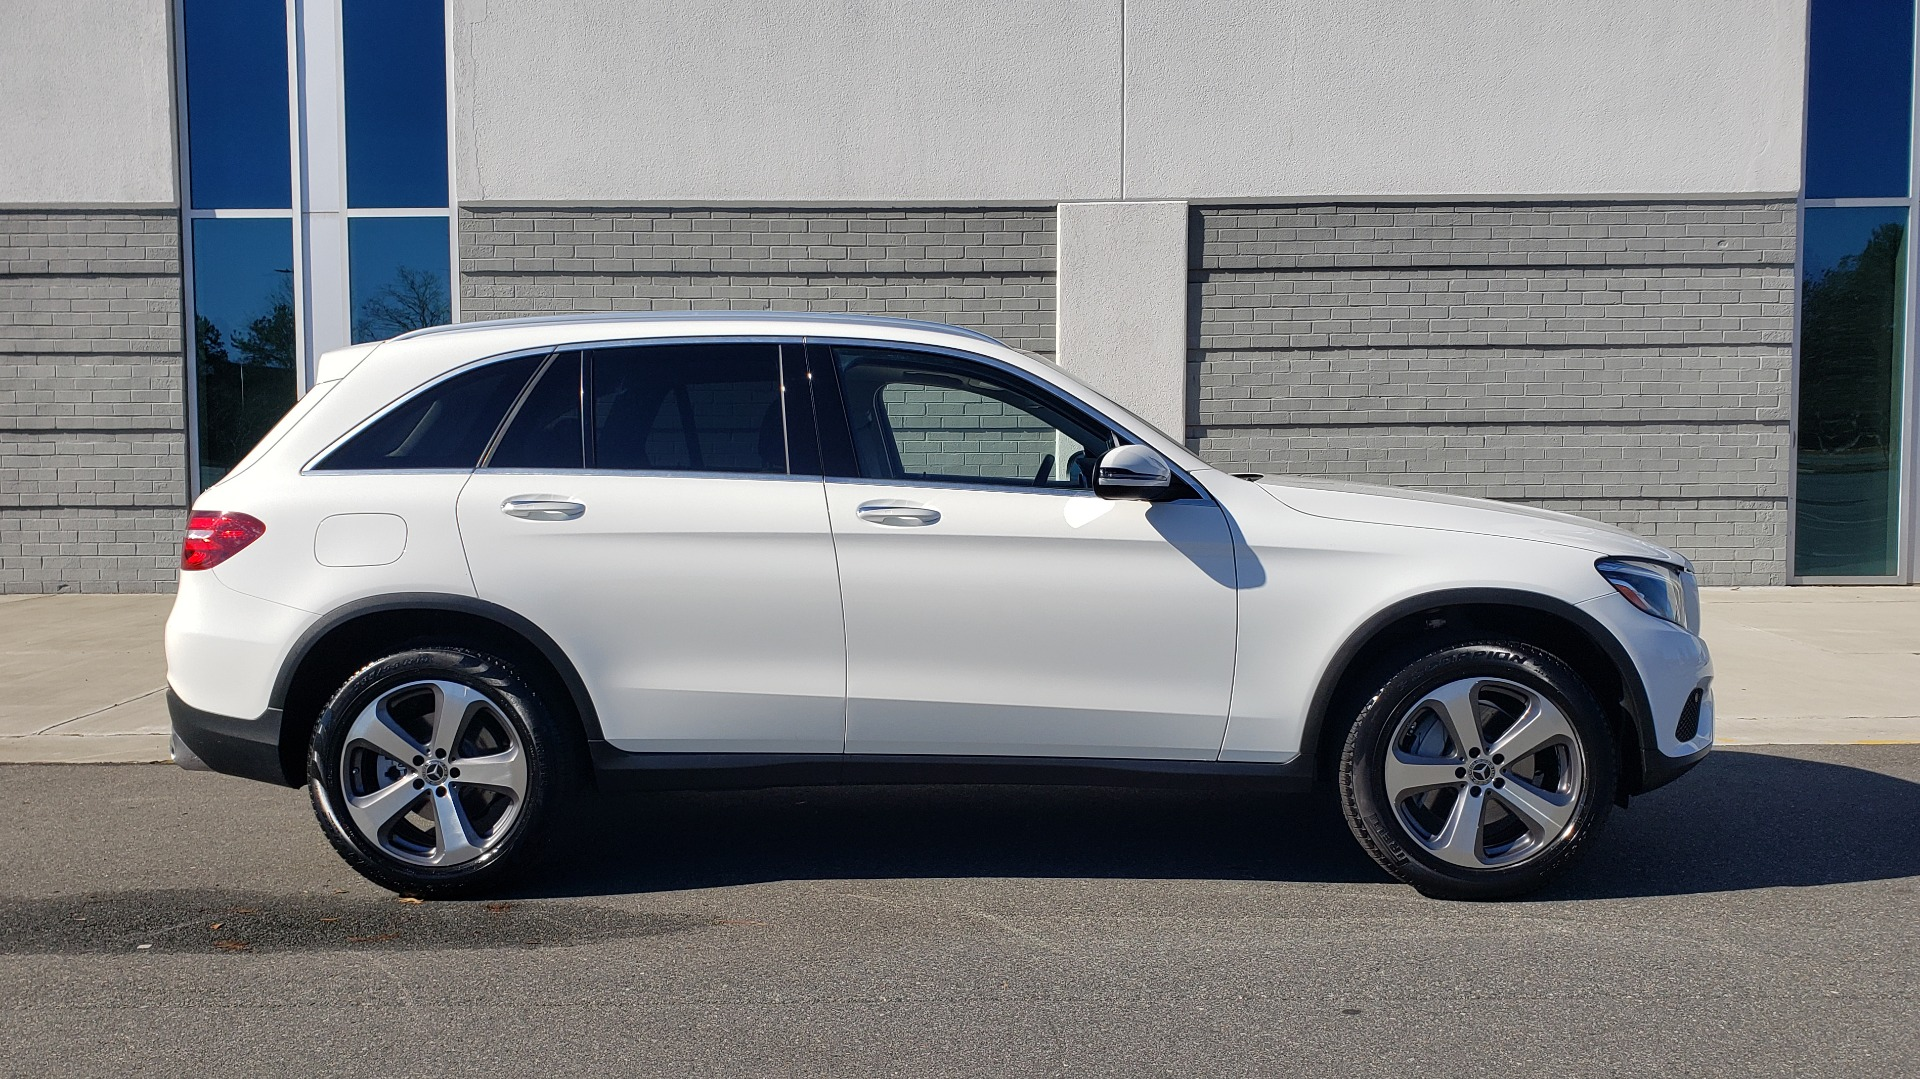 Used 2018 Mercedes-Benz GLC 300 4MATIC / PREM PKG / NAV / SUNROOF / REARVIEW for sale $36,995 at Formula Imports in Charlotte NC 28227 5